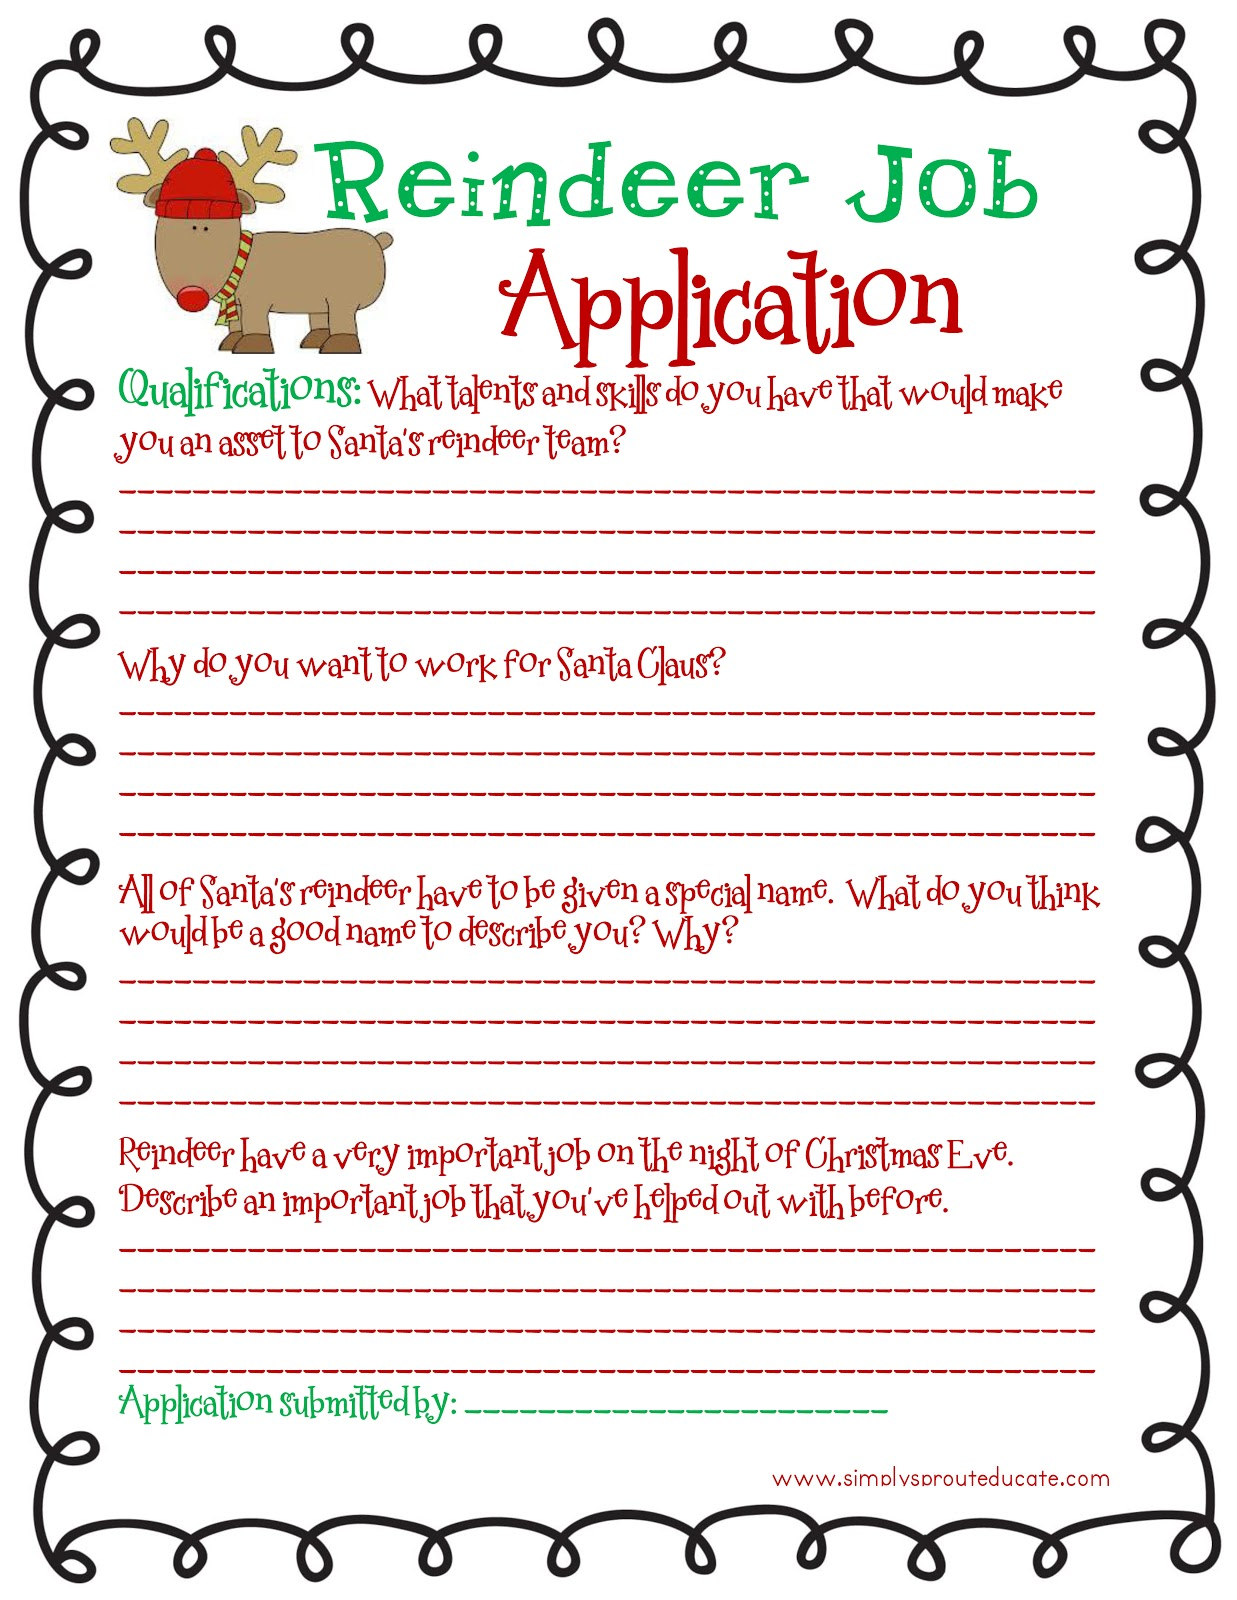 job application word document best resume and all letter cv job application word document job reference list template microsoft word month of joy reindeer wanted simply